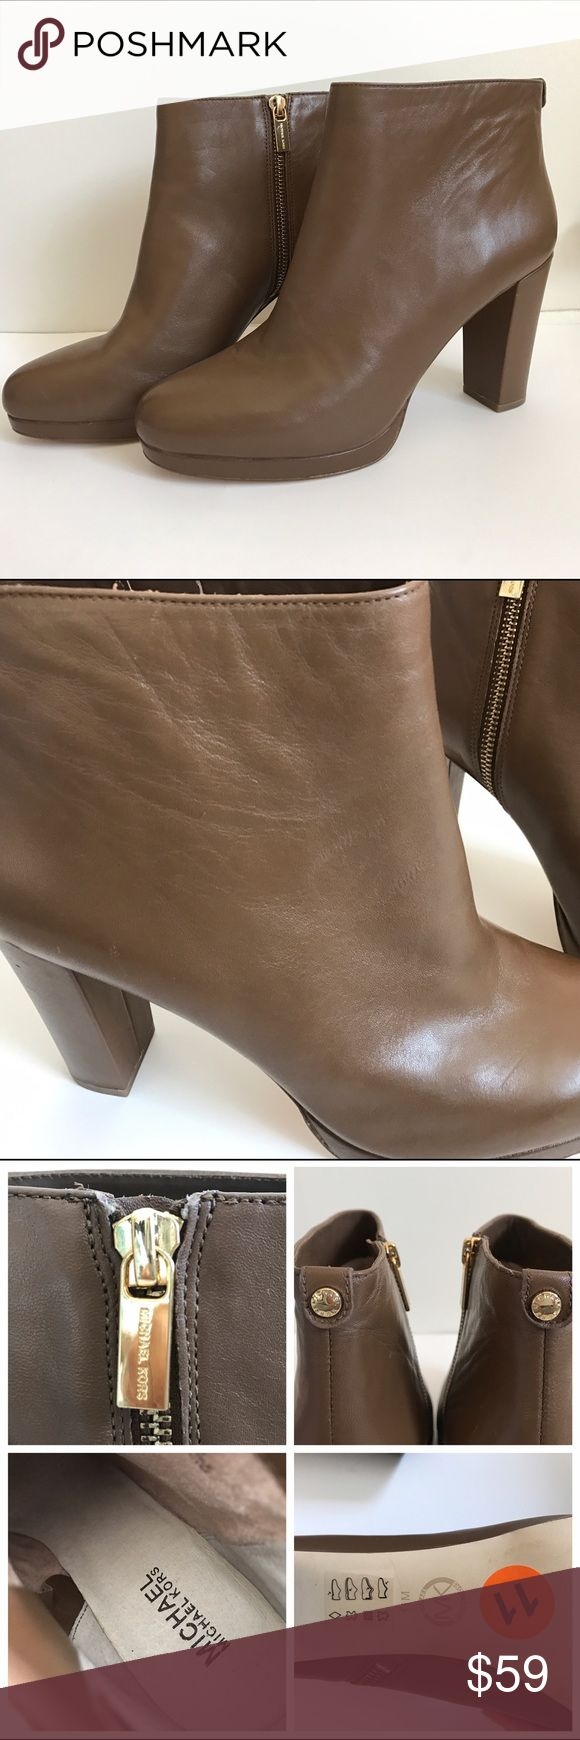 LIKE NEW Micheal kors brown leather ankle boots Like new condition. Michael Michael kors brown leather ankle boots. Has some minor scratches. MICHAEL Michael Kors Shoes Ankle Boots & Booties